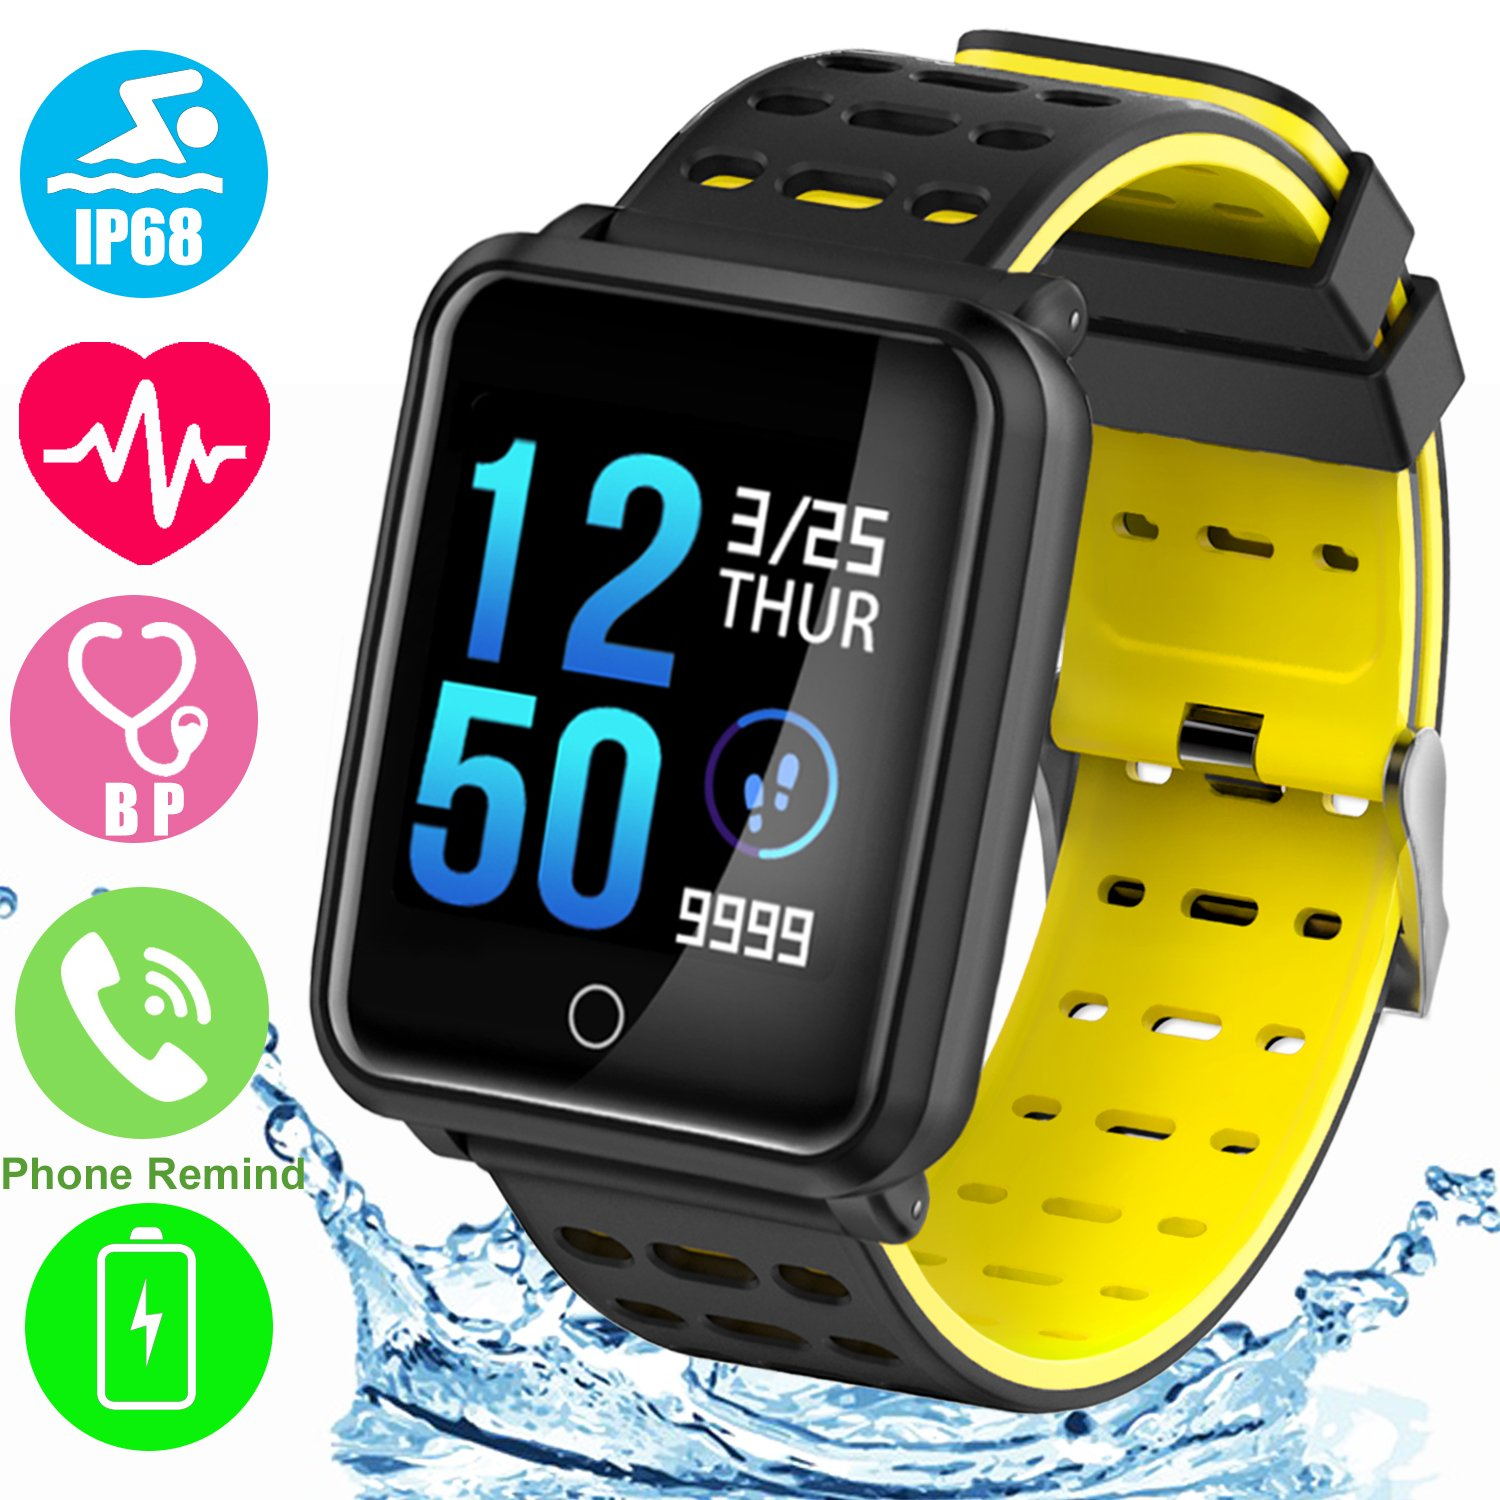 1.3'' TF2 HD Screen Sport Fitness Tracker with Blood Pressure Heart Rate Monitor IP68 Waterproof Pedometer Stopwatch Smartwatch for Kid Men Women Wristband Swim Run Travel Activity Tracker iOS Android by Symfury (Image #1)